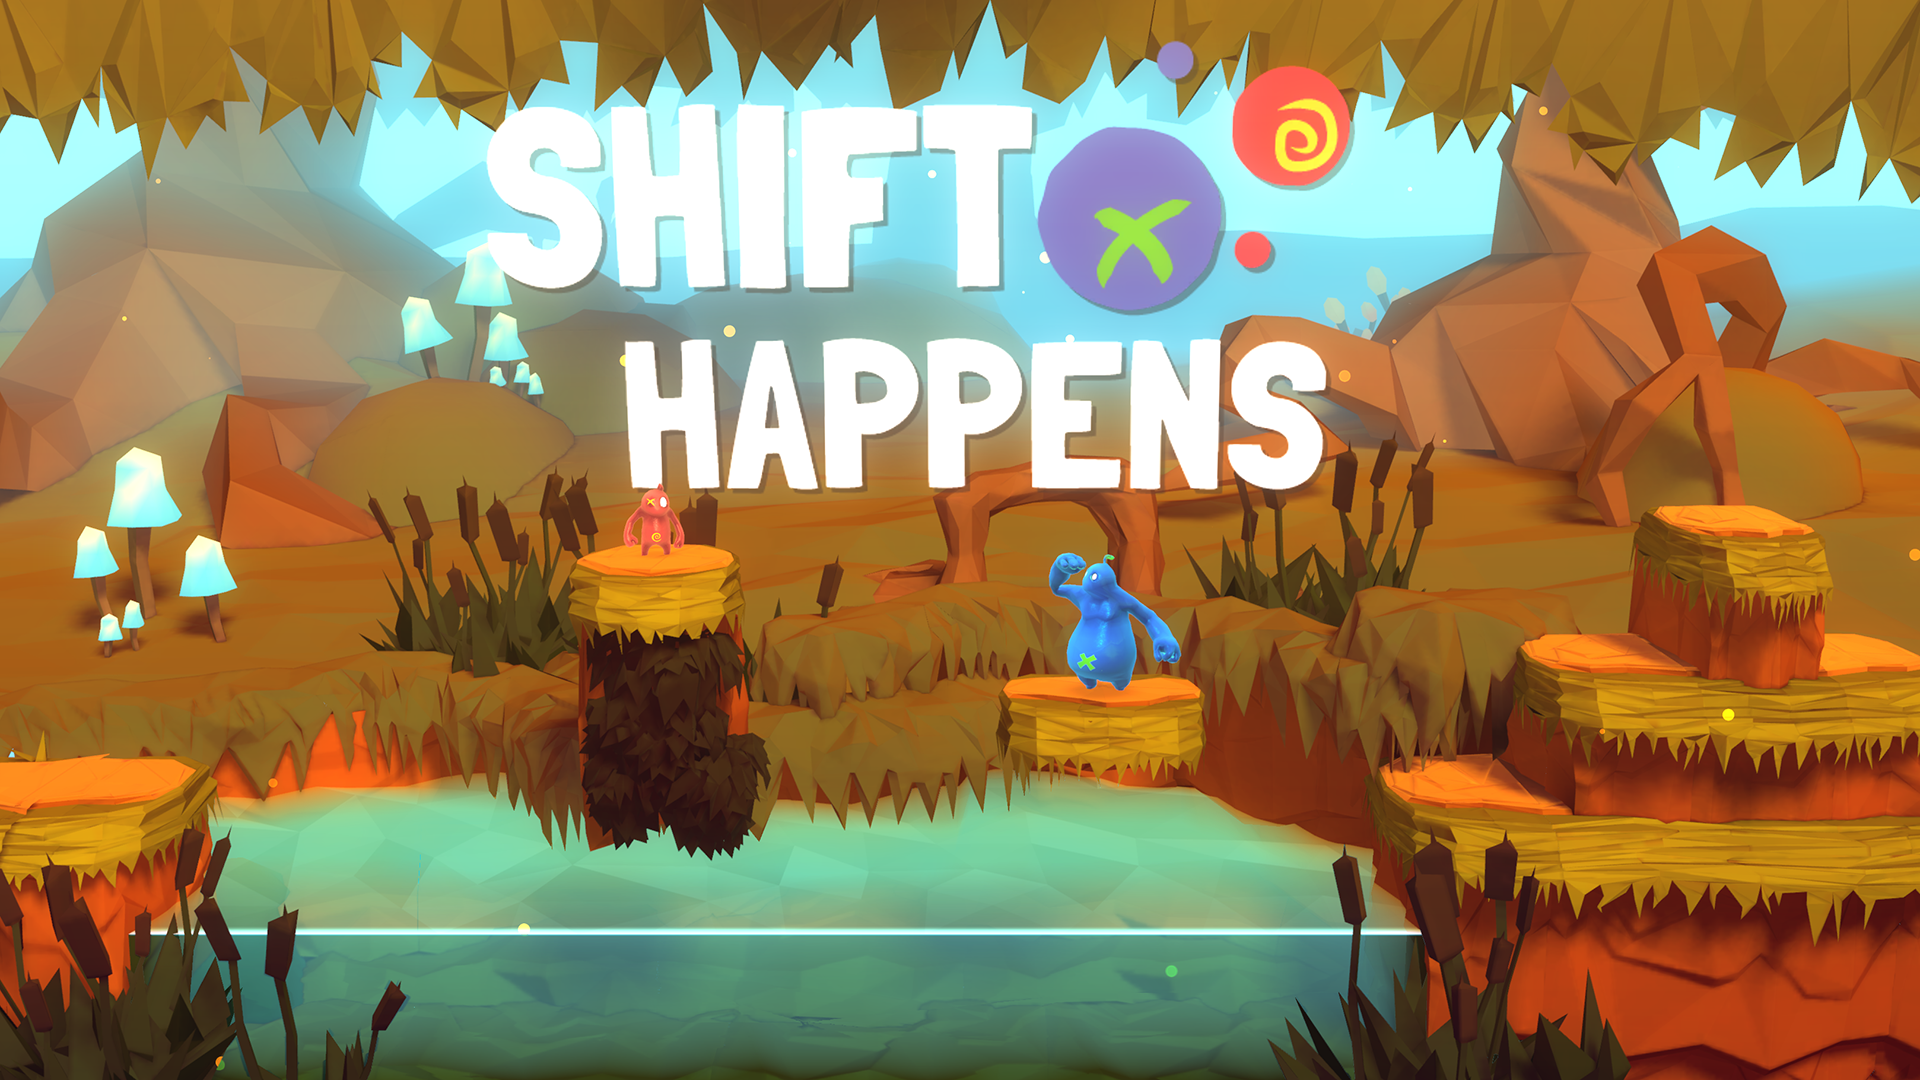 21_shift_happens_forest_splash_1080p.png